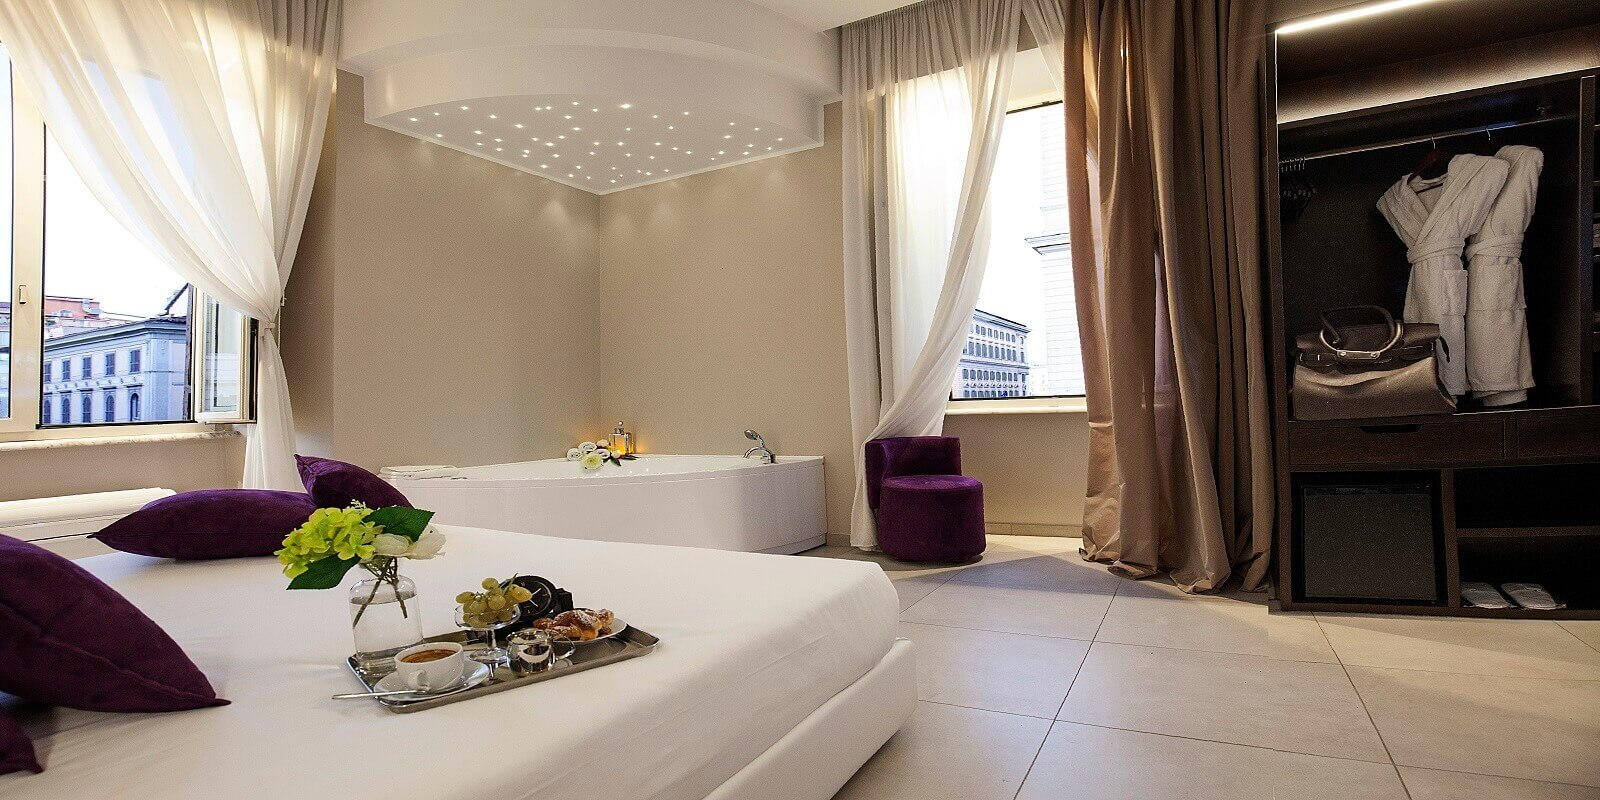 jacuzzi-room-roman-holidays-boutique-hotel